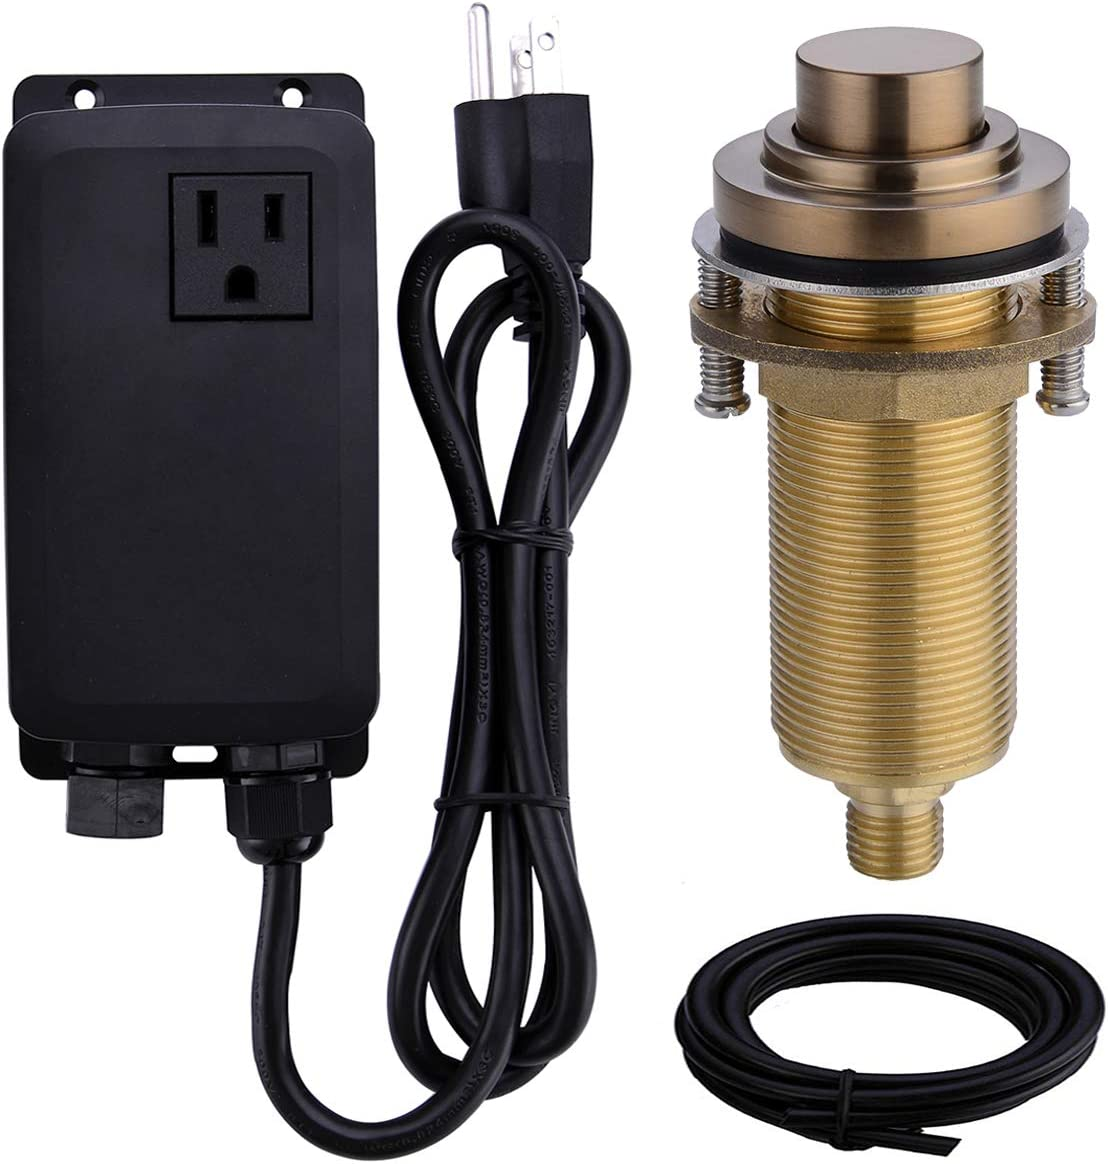 SINKINGDOM SinkTop Air Switch Kit with Champagne Bronze Long Button (Full Brass) for Garbage Disposal, Single Outlet